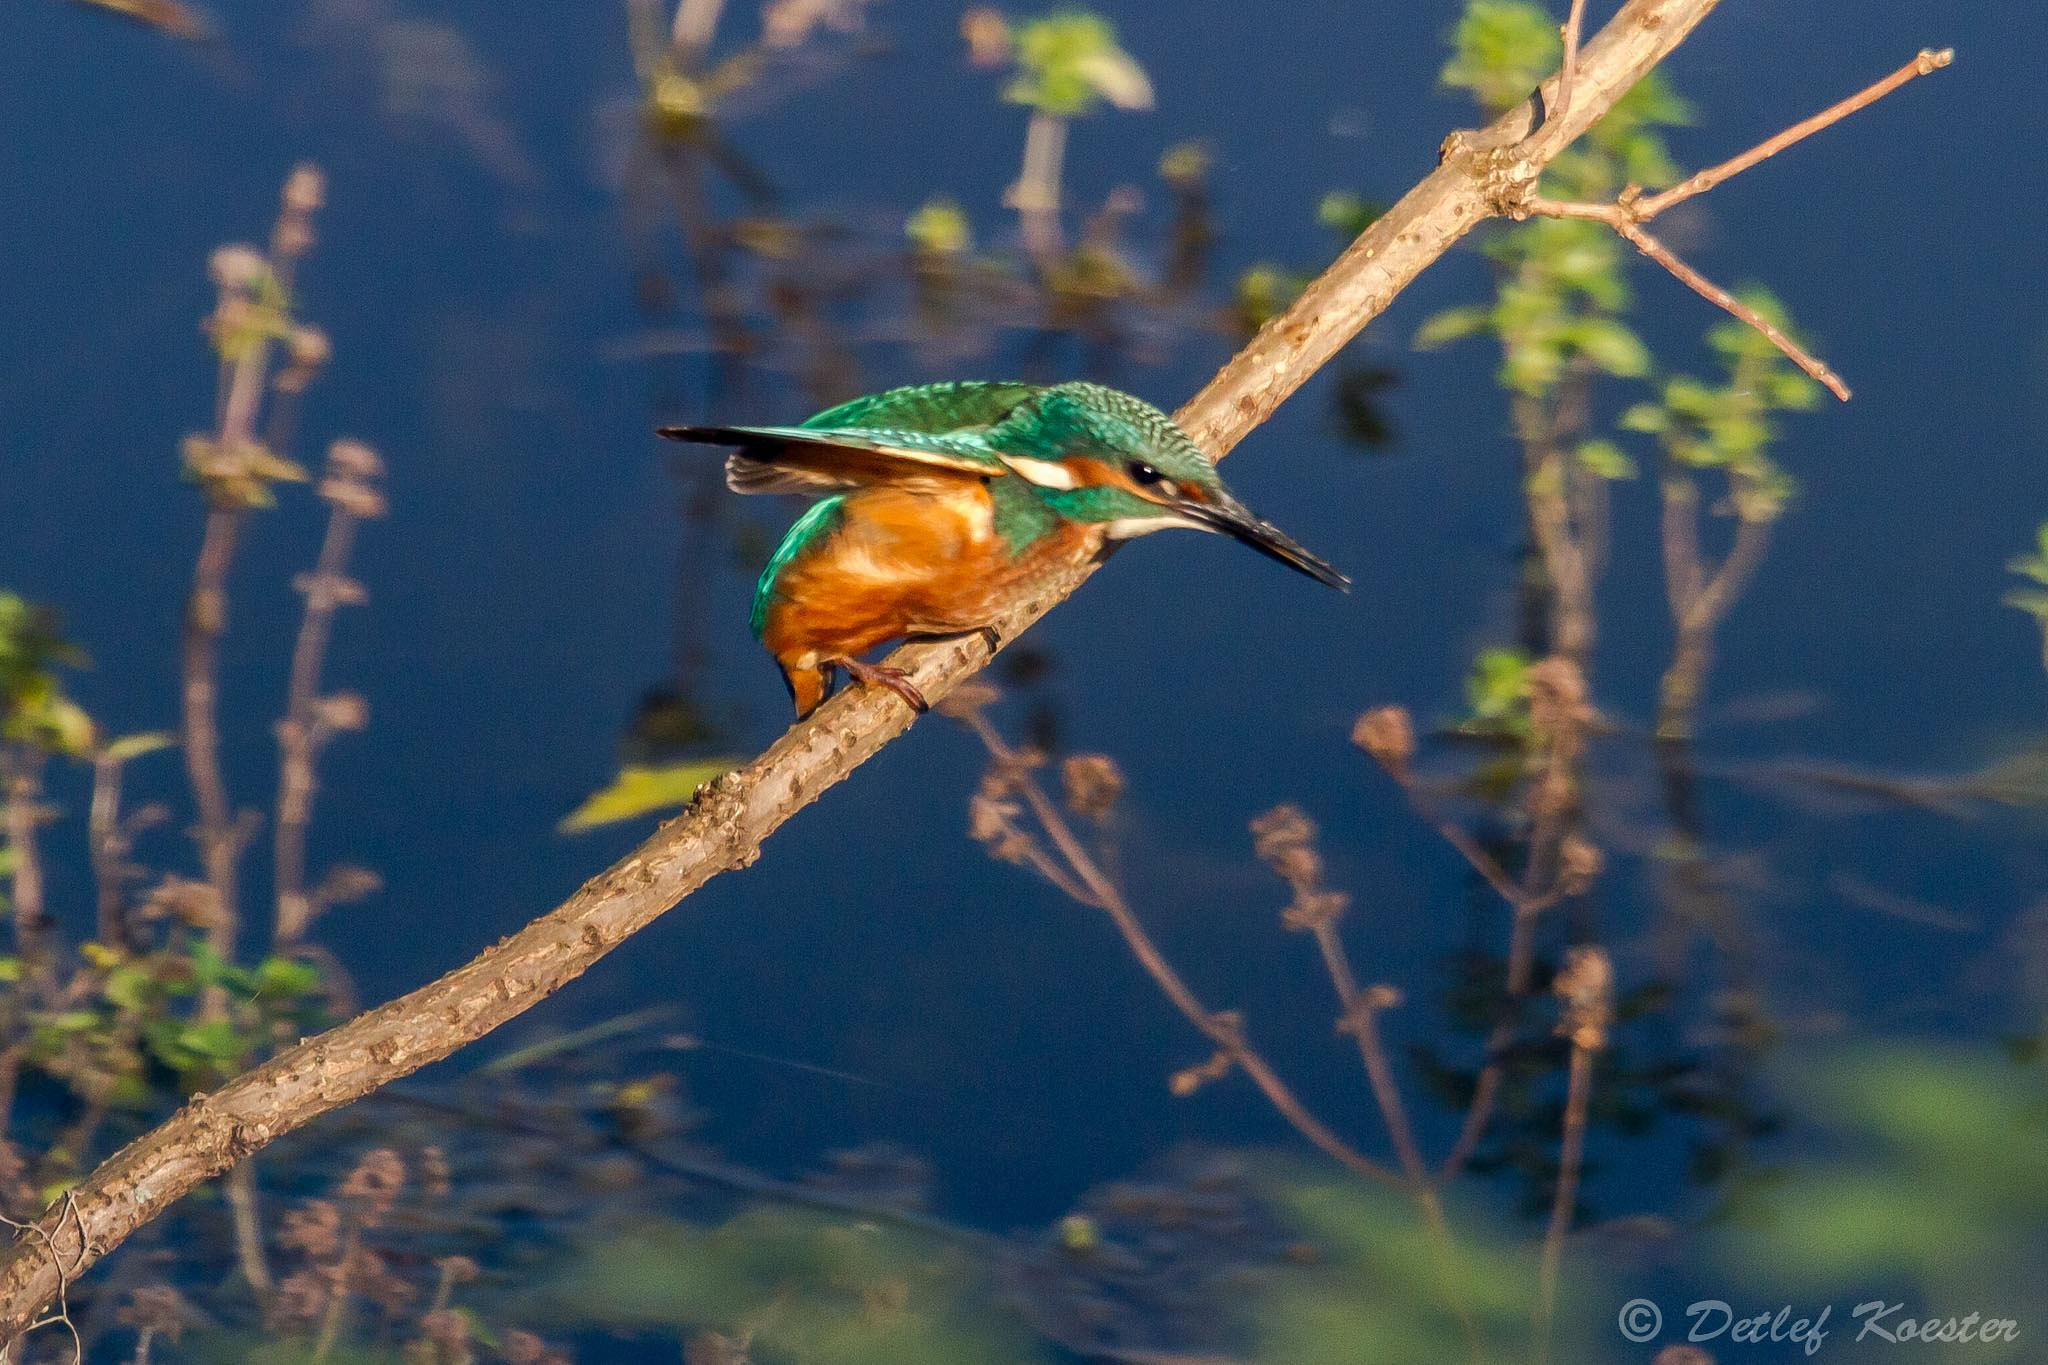 Kingfisher spying by detlefkoester